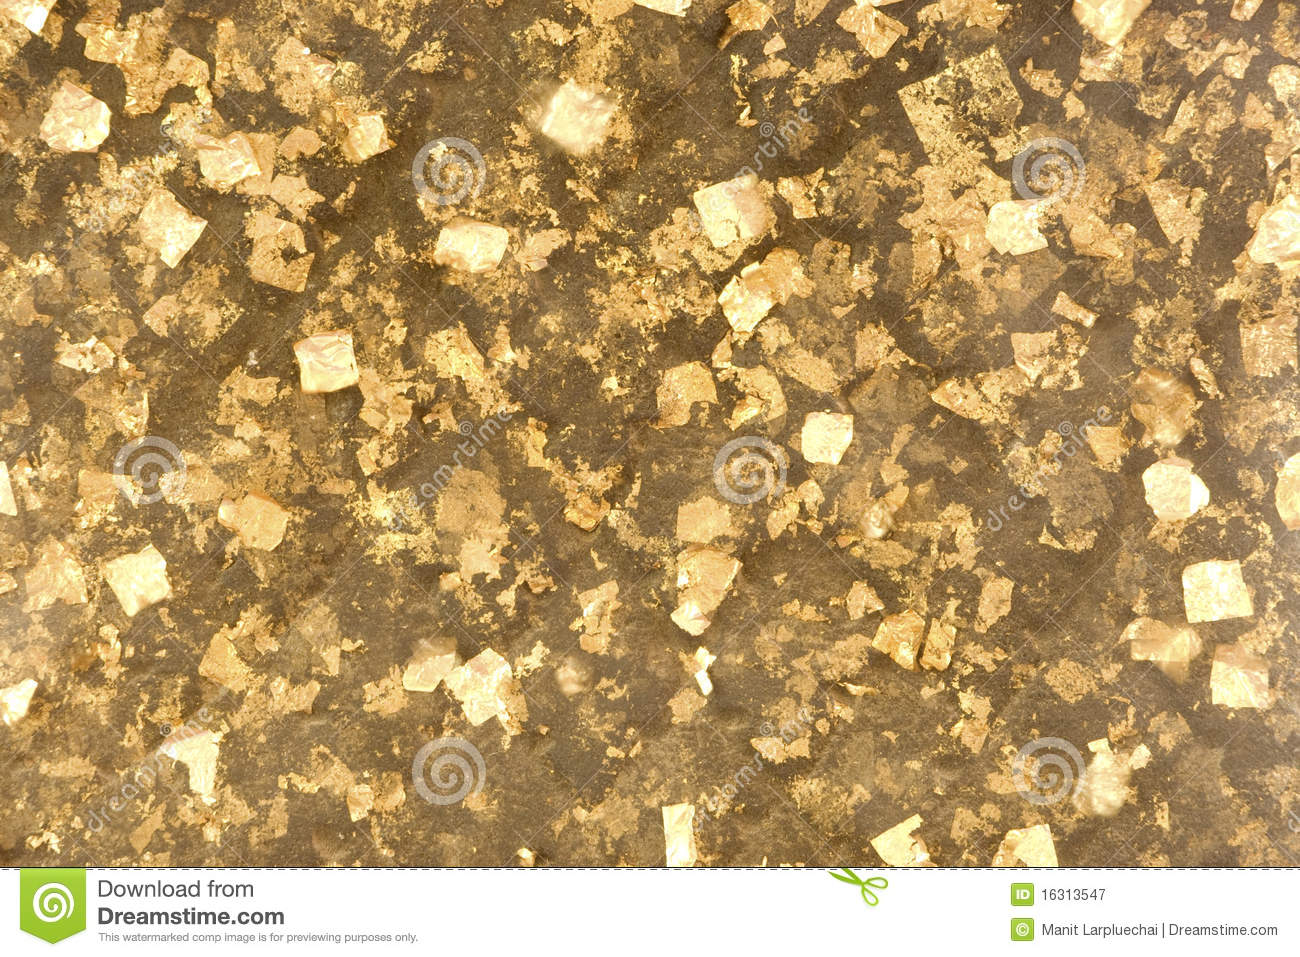 Gold Foil. Royalty Free Stock Photography - Image: 16313547